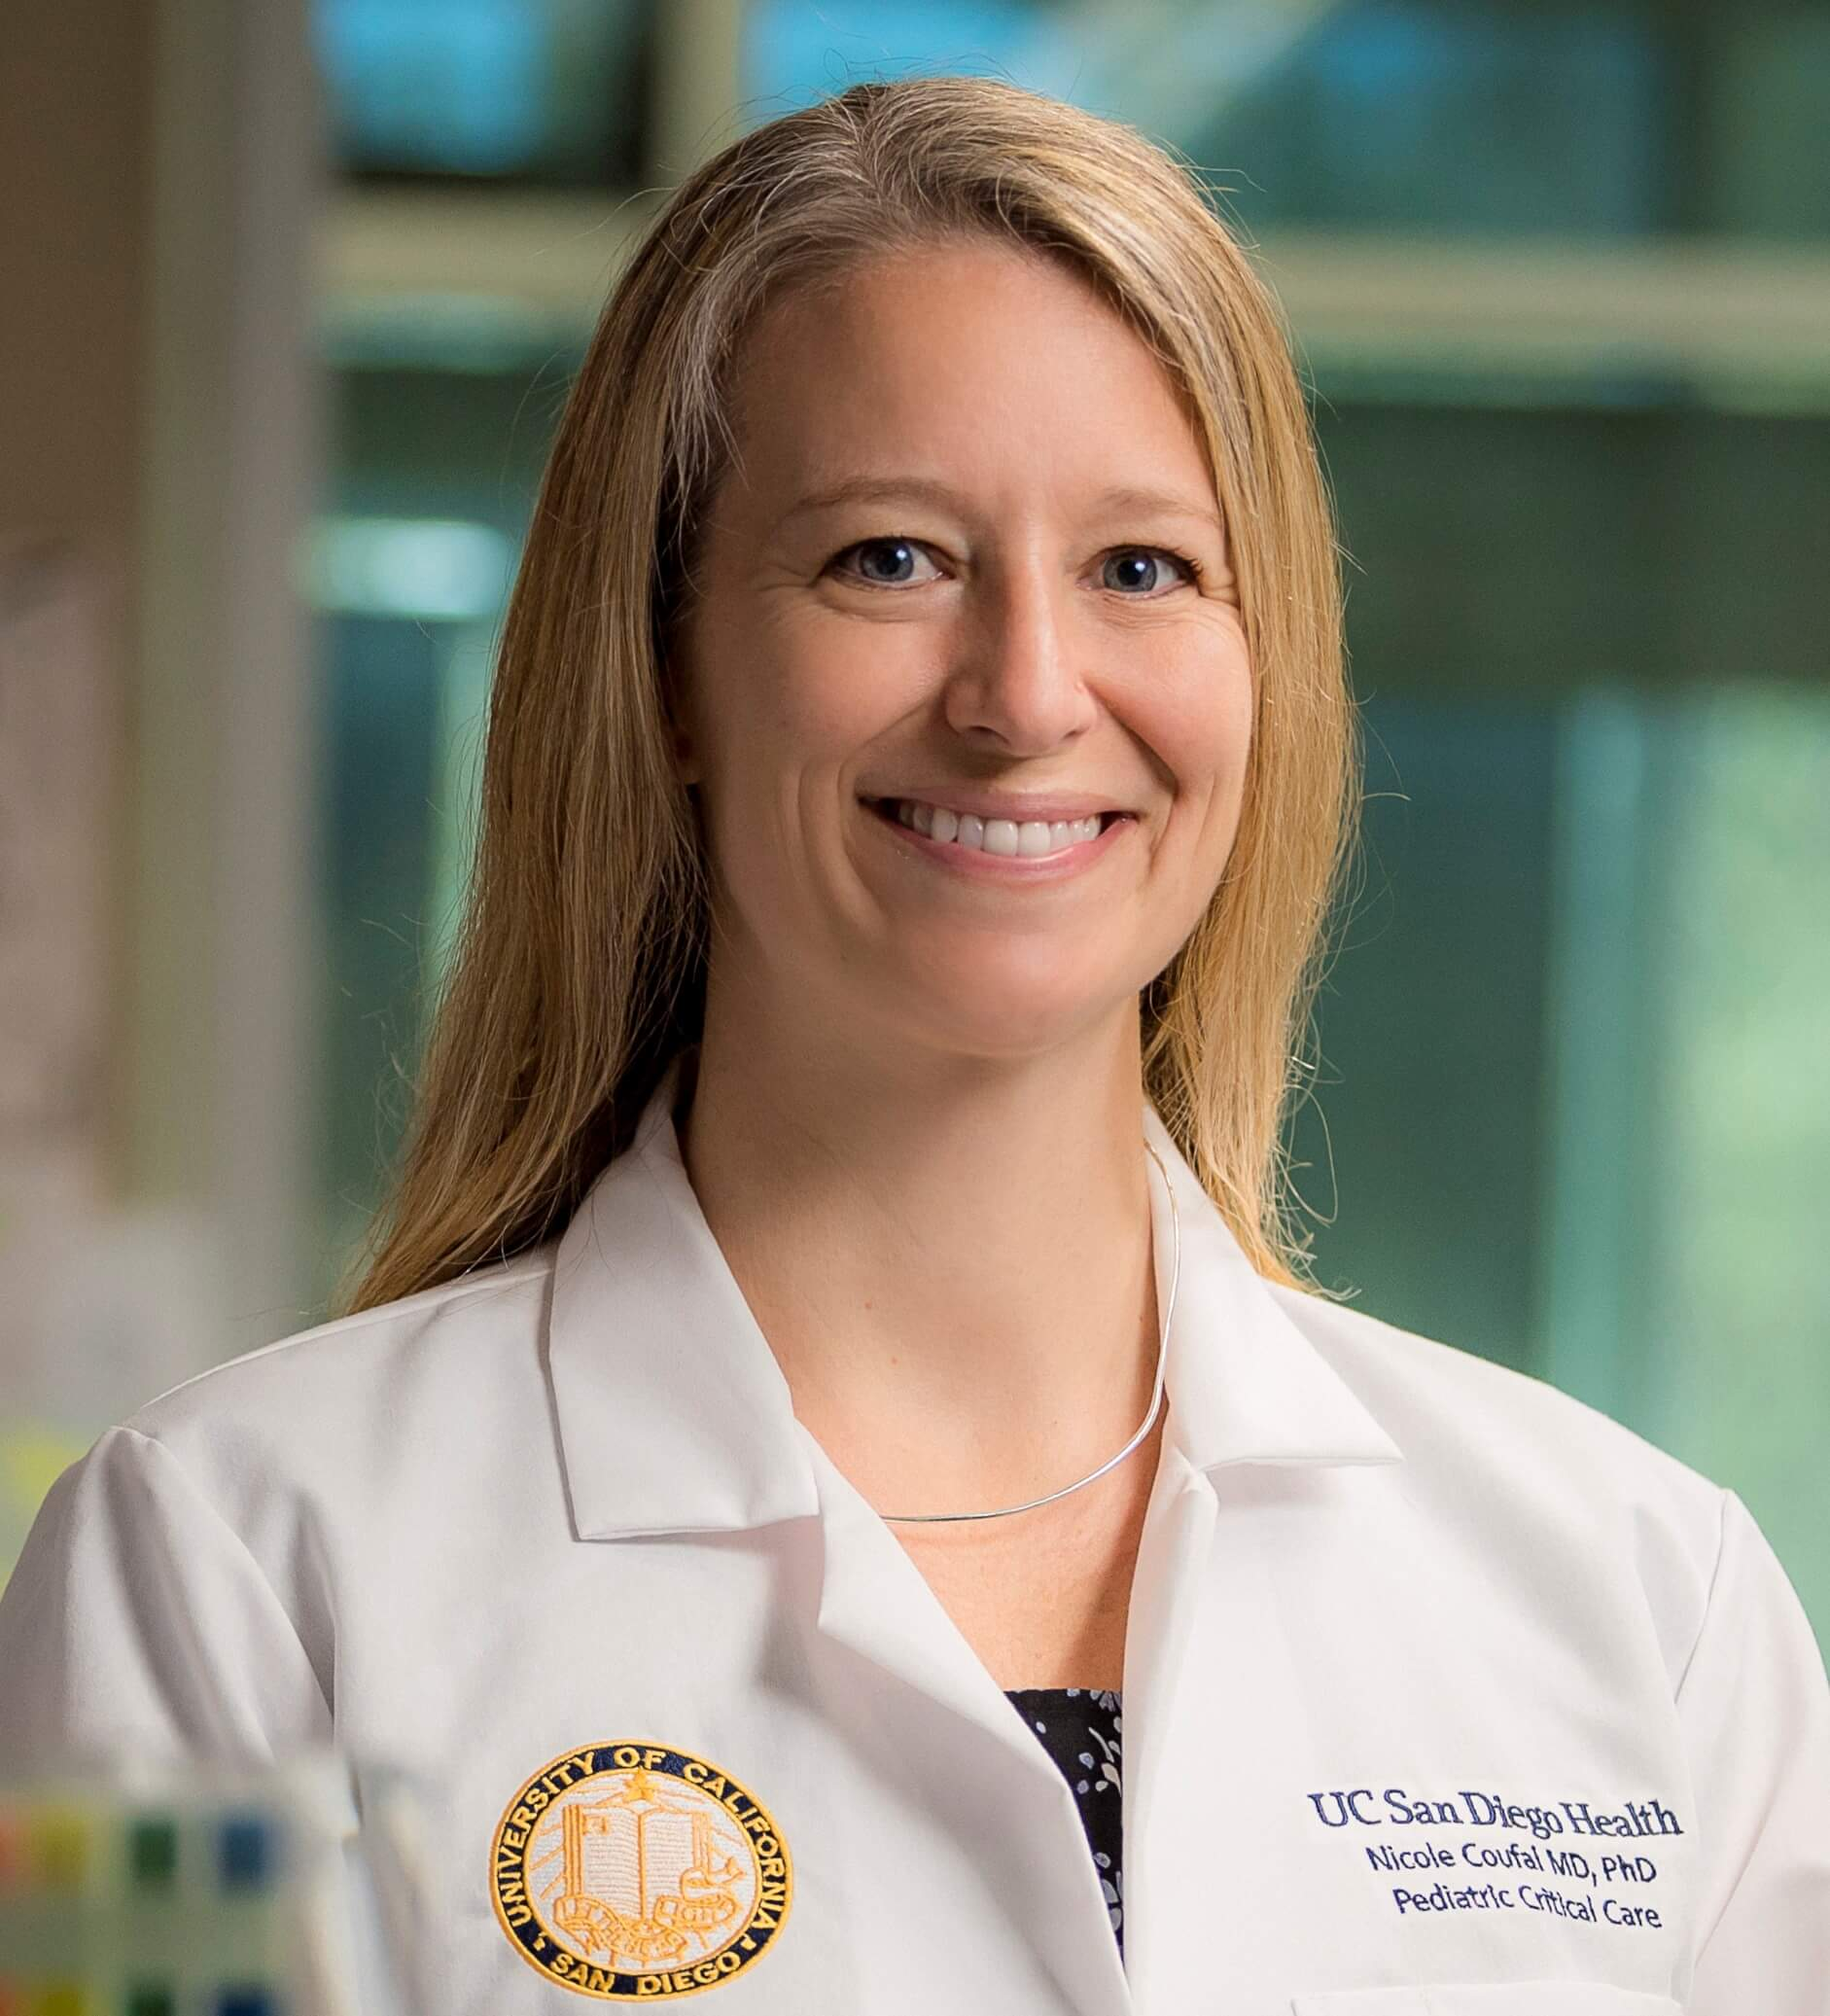 Nicole Coufal, MD, PhD (Lead)